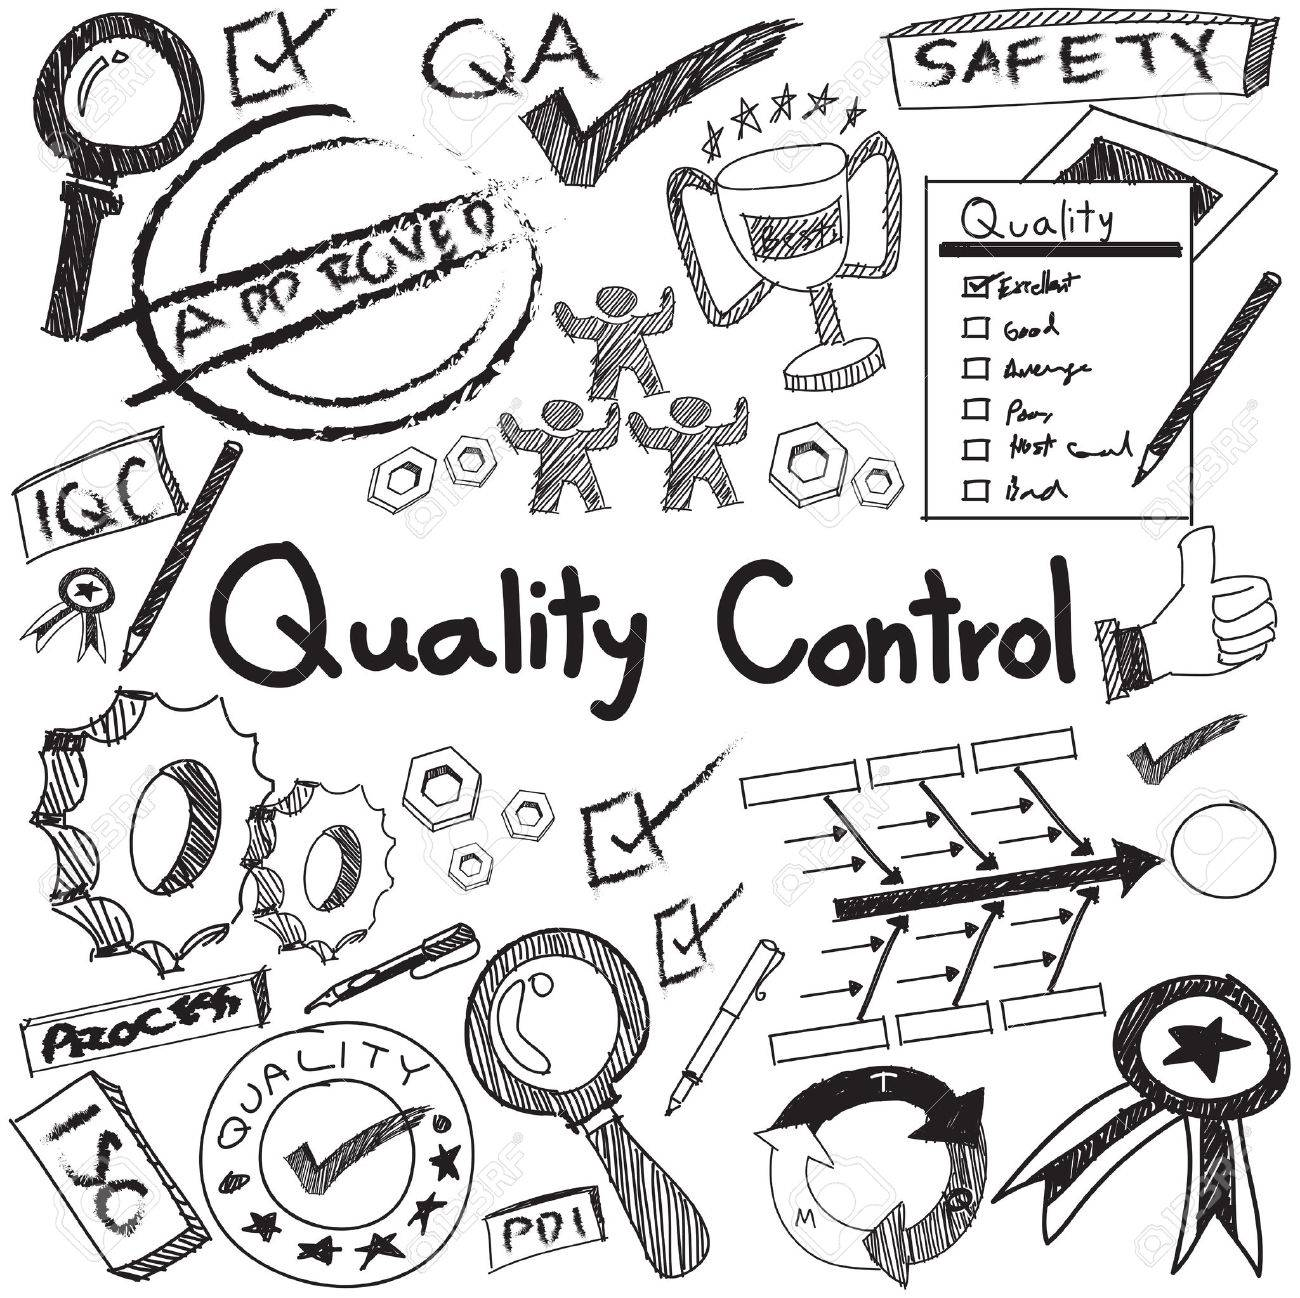 Quality control in manufacturing industry production and operation handwriting doodle sketch design tools sign and symbol in white isolated background paper for engineering management education presentation or introduction with sample text, create by vect - 52658992